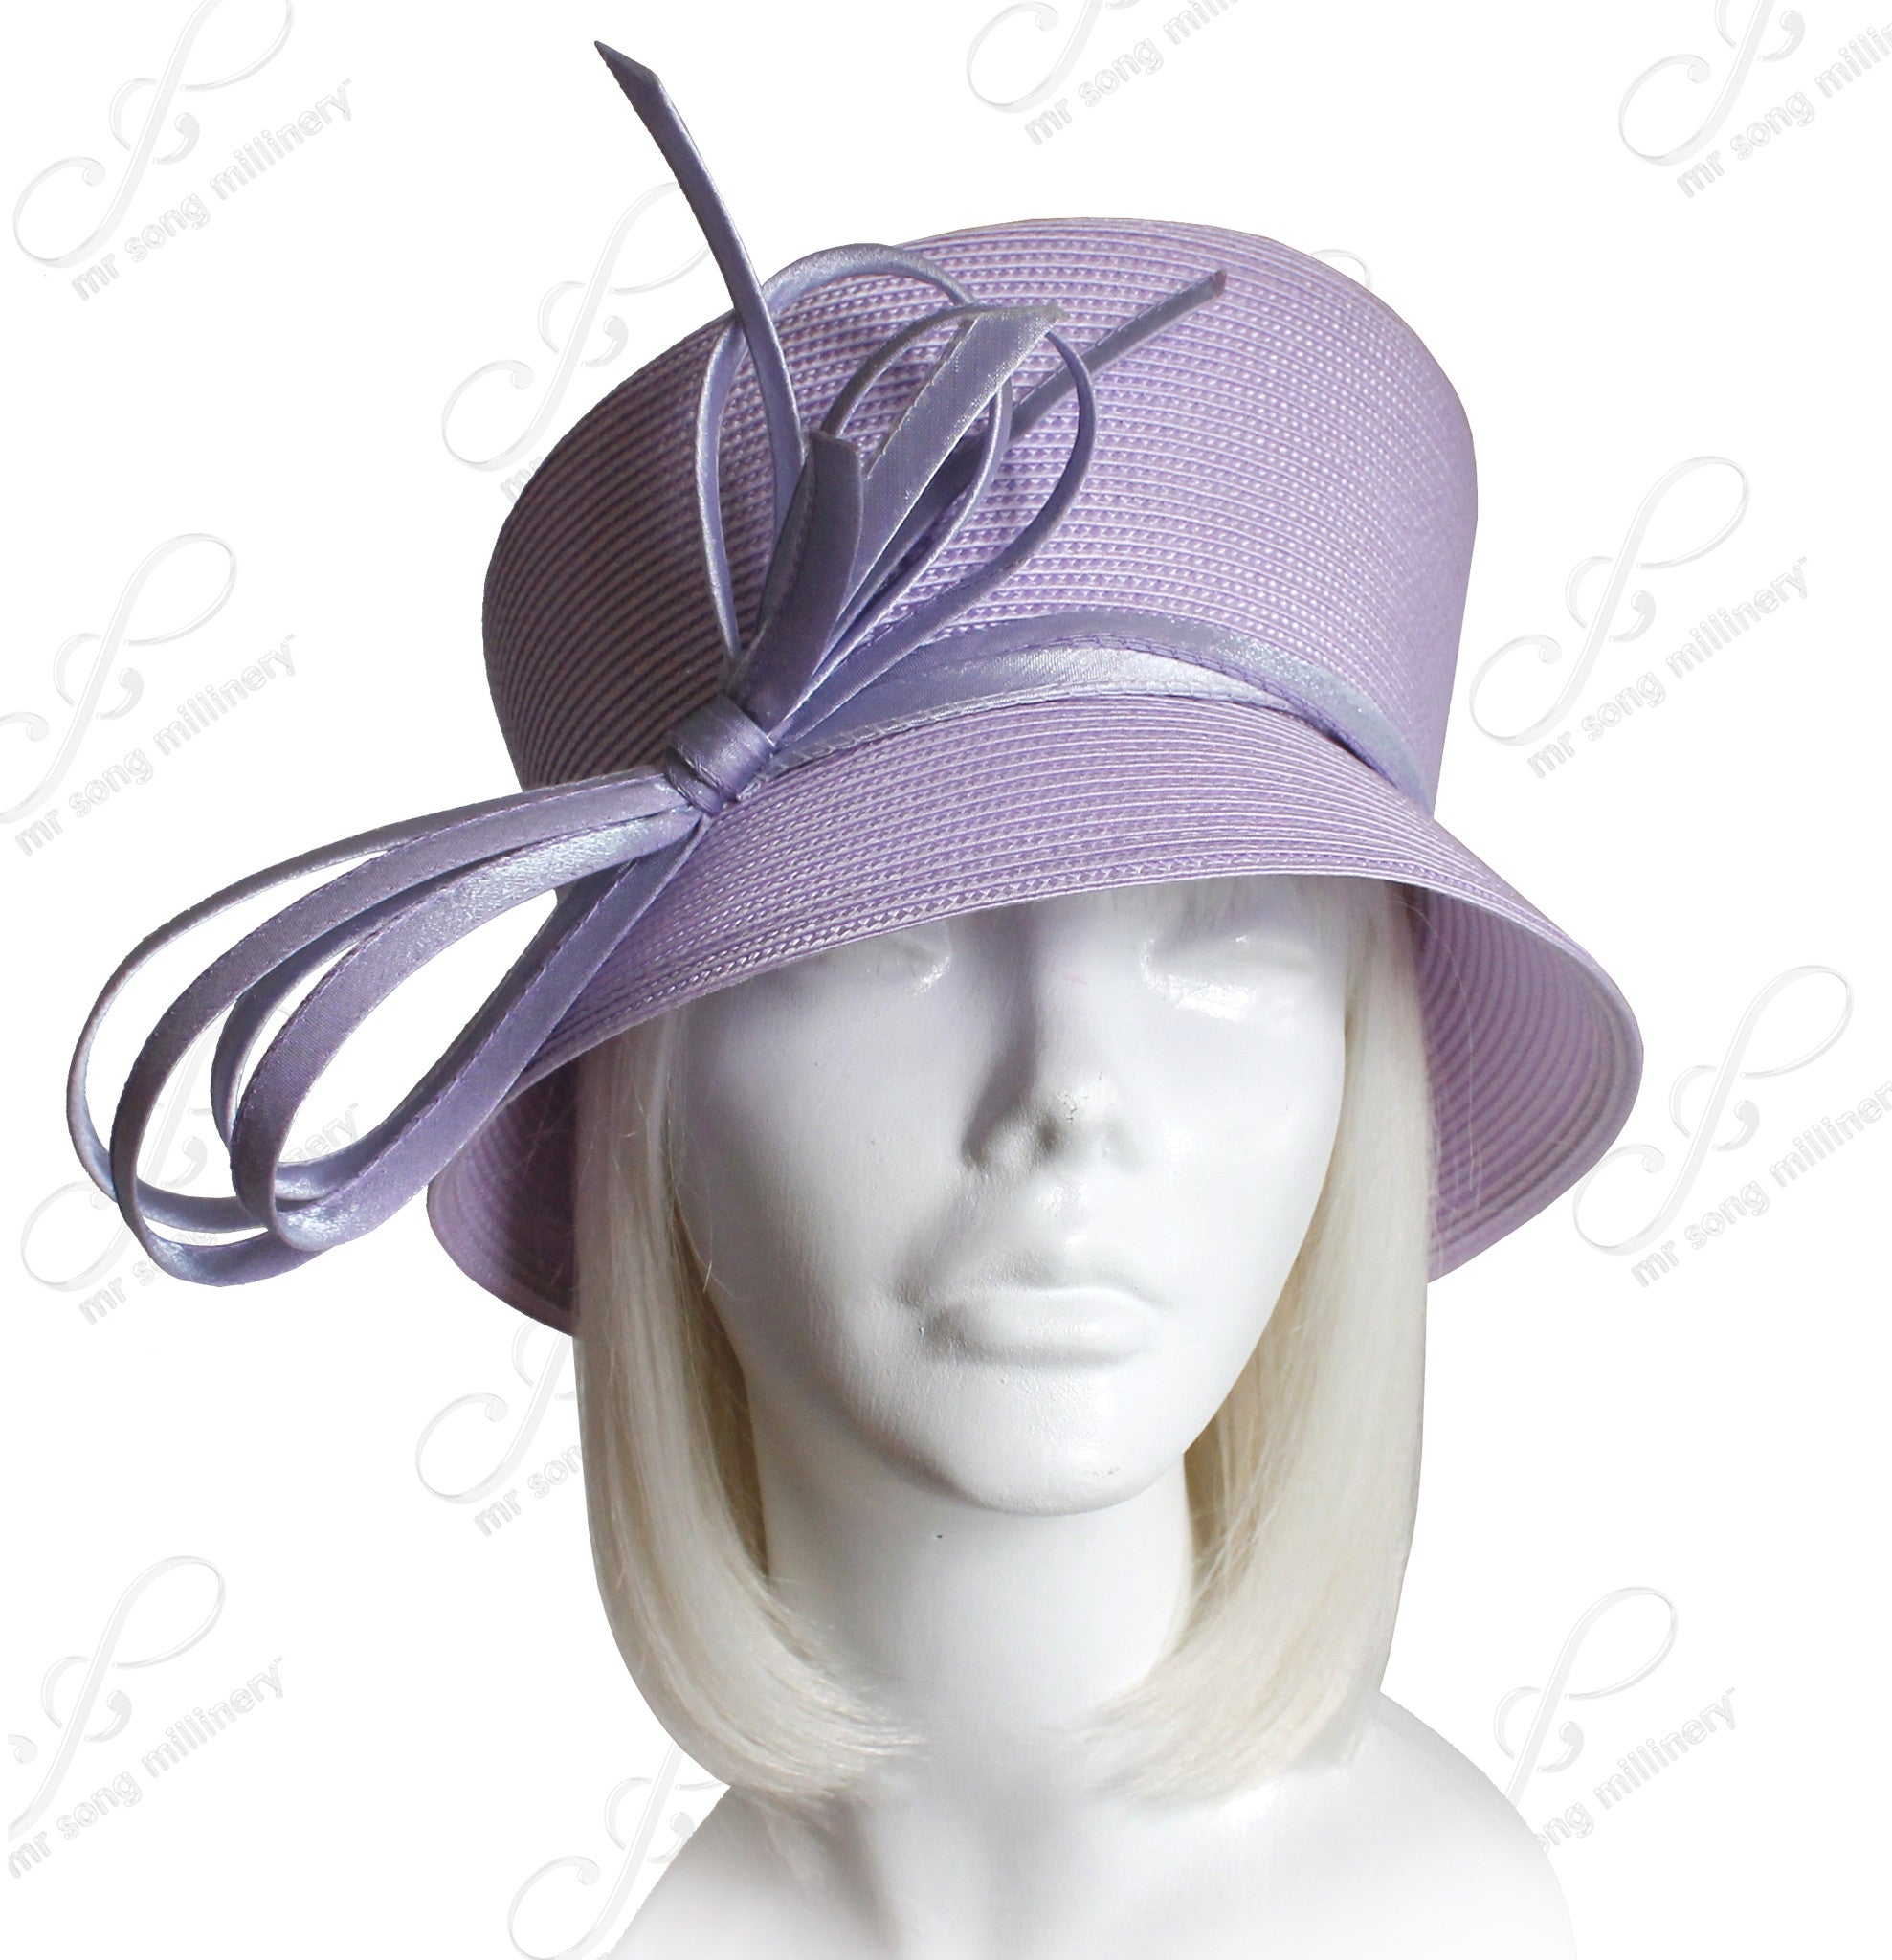 Mr. Song Millinery Slant-Crown Cloche Hat With Custom Knotted Loop Bow - 2 Colors